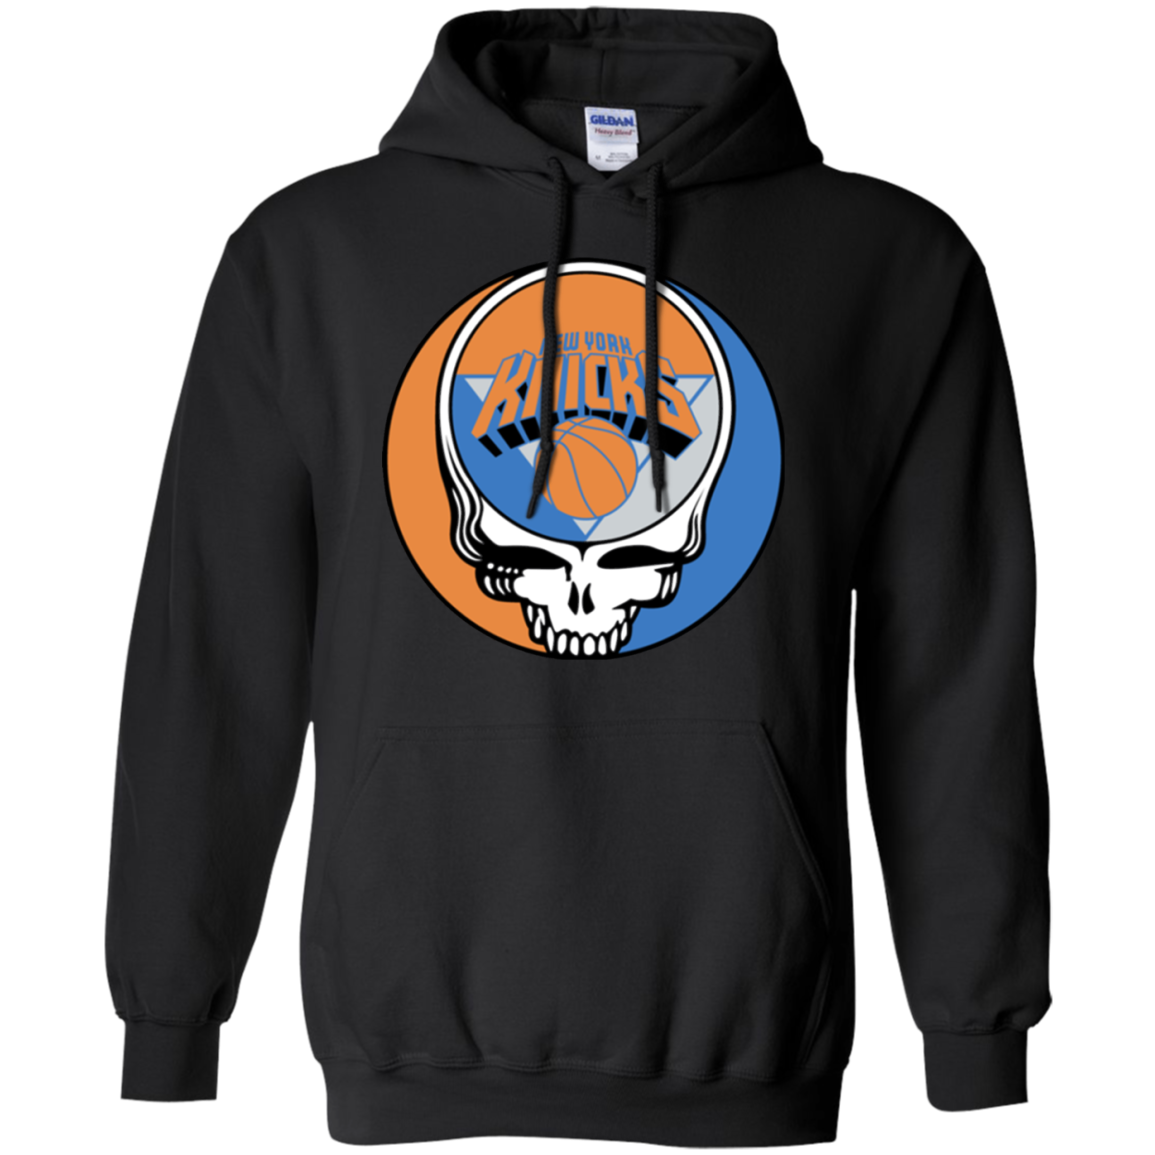 Check Out This Awesome New York Knicks Basketball Grateful Dead Steal Your Face Shi Shirts